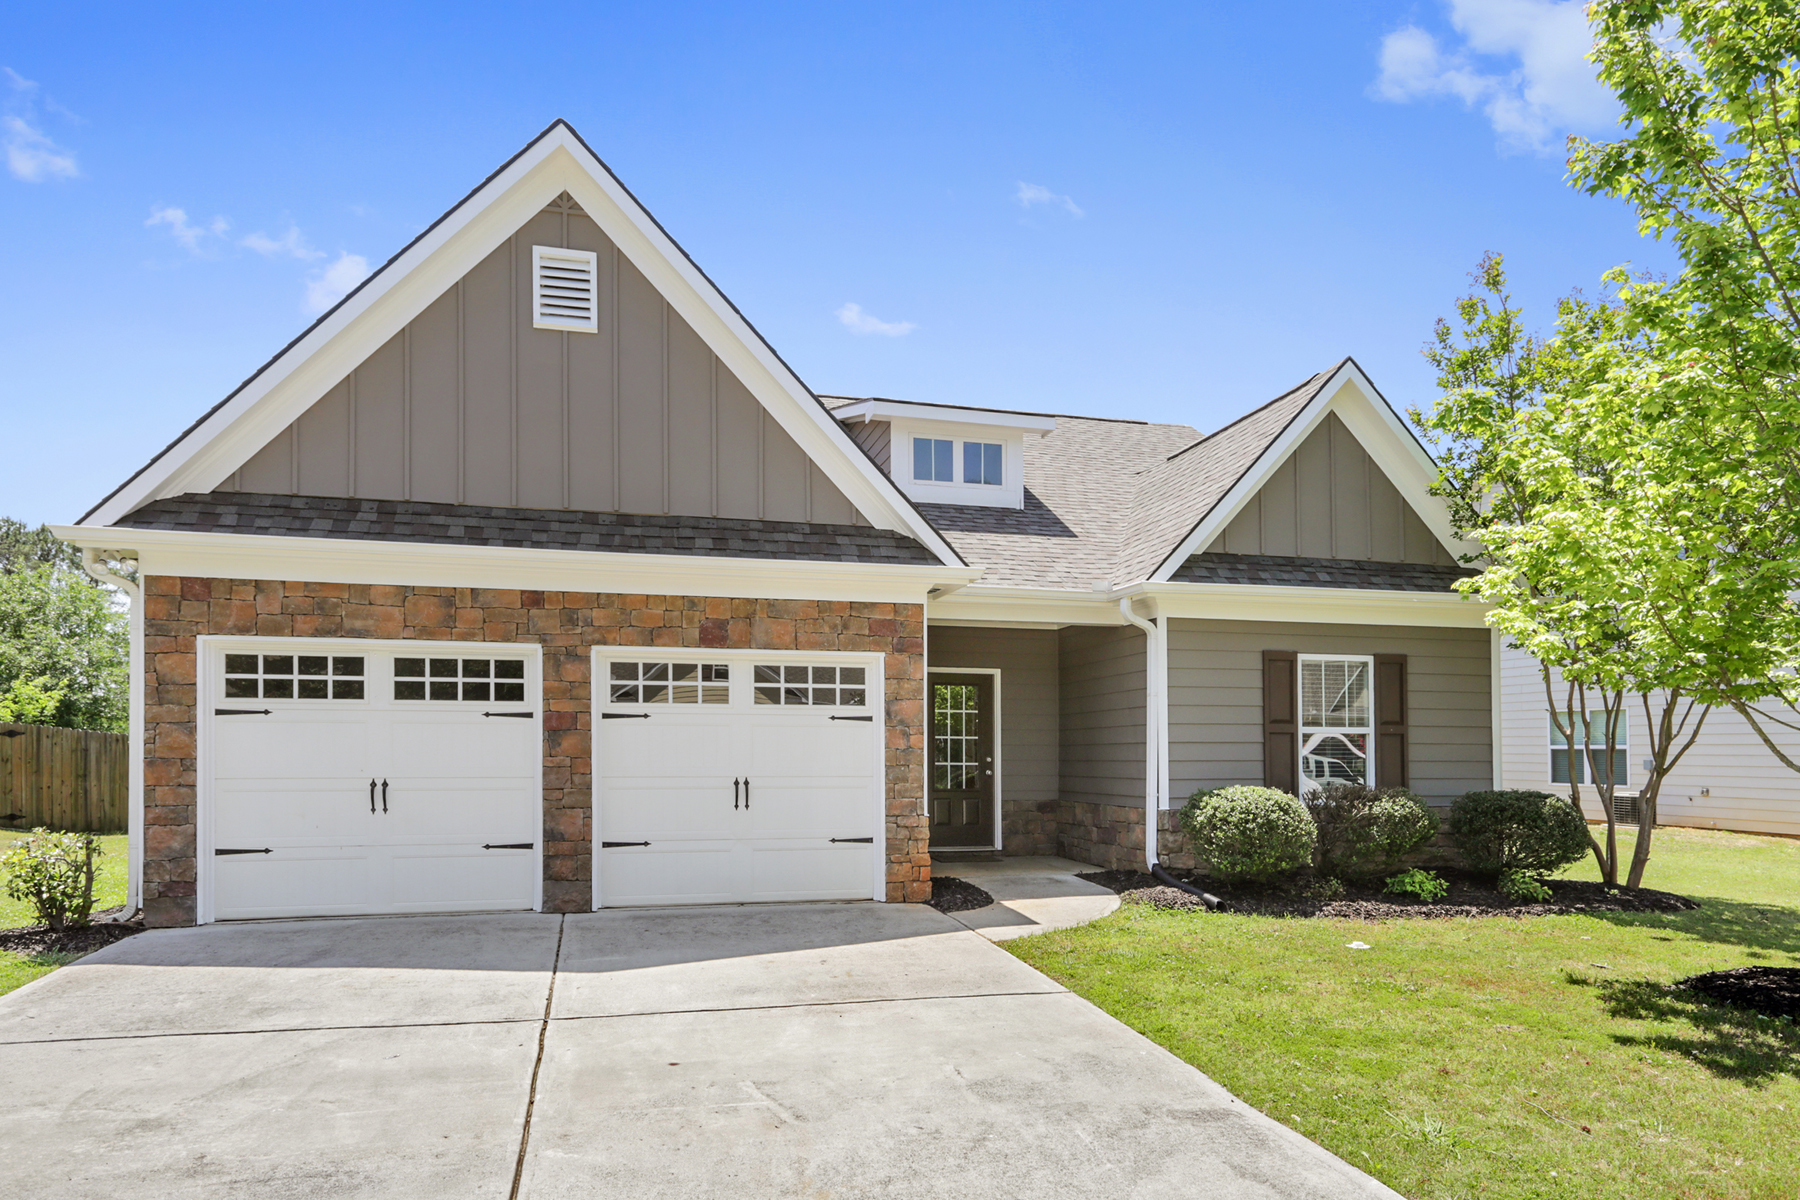 단독 가정 주택 용 임대 에 Charming Lease Opportunity In Cartersville 66 Mercer Lane Cartersville, 조지아 30120 미국